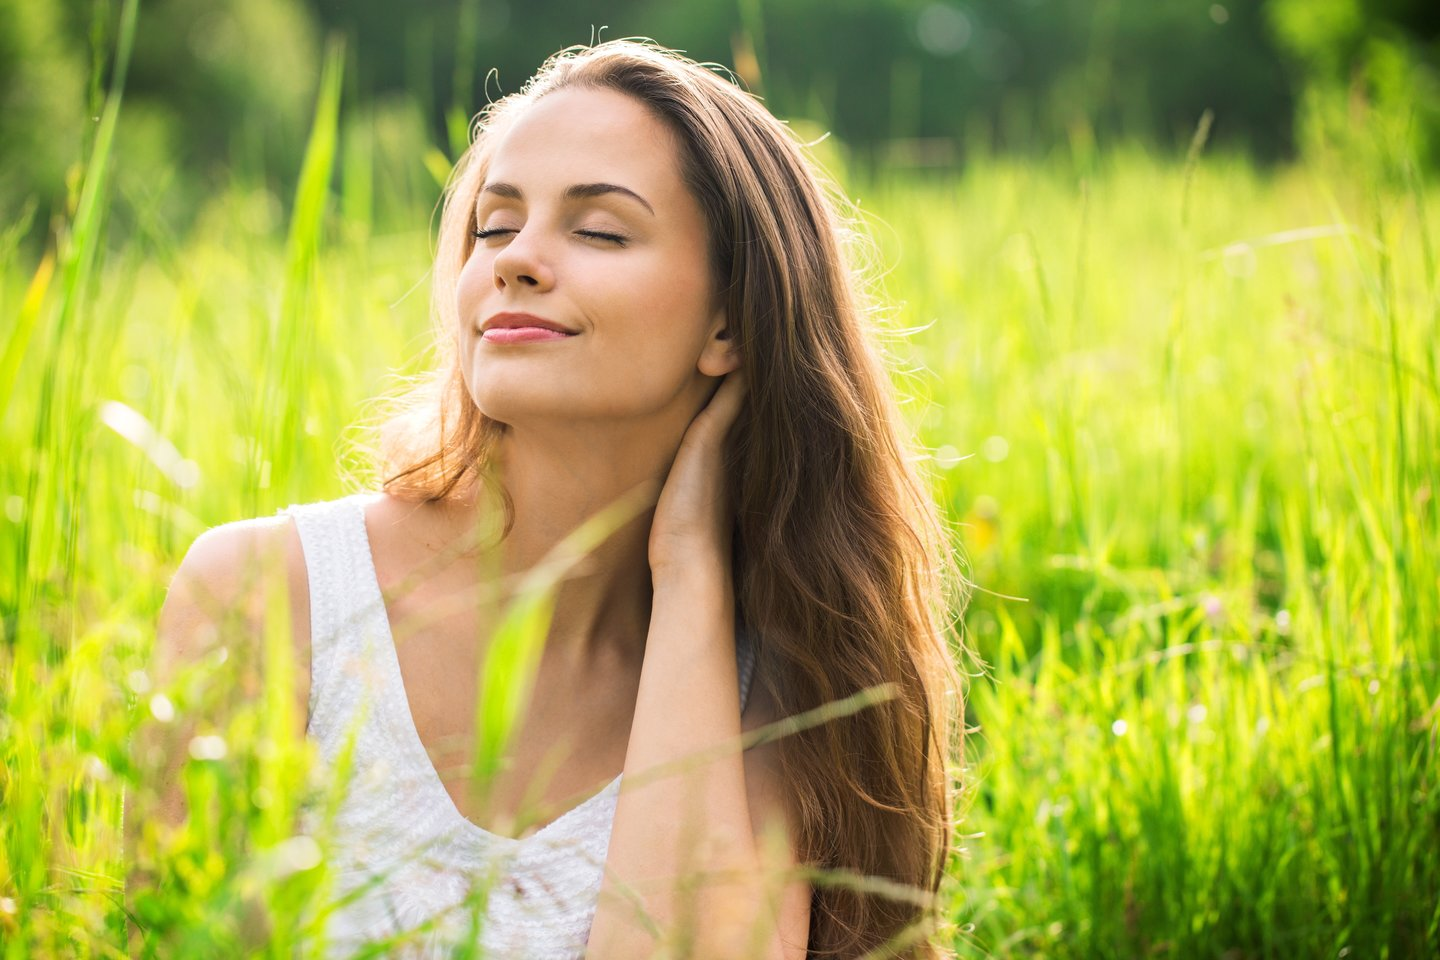 Ways of rejuvenation: how to be always young and attractive